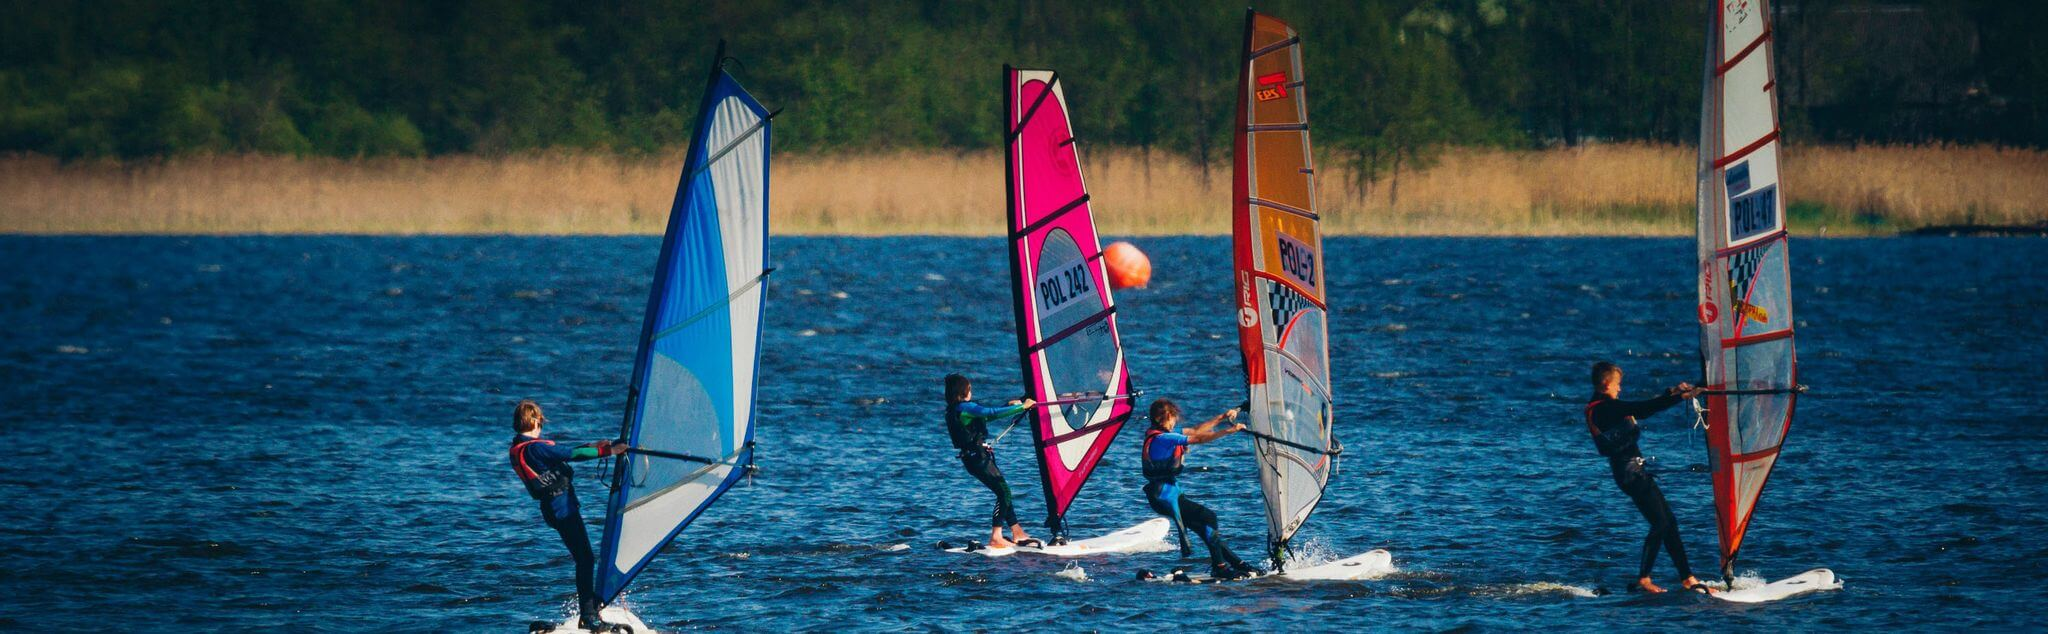 Windsurf in France